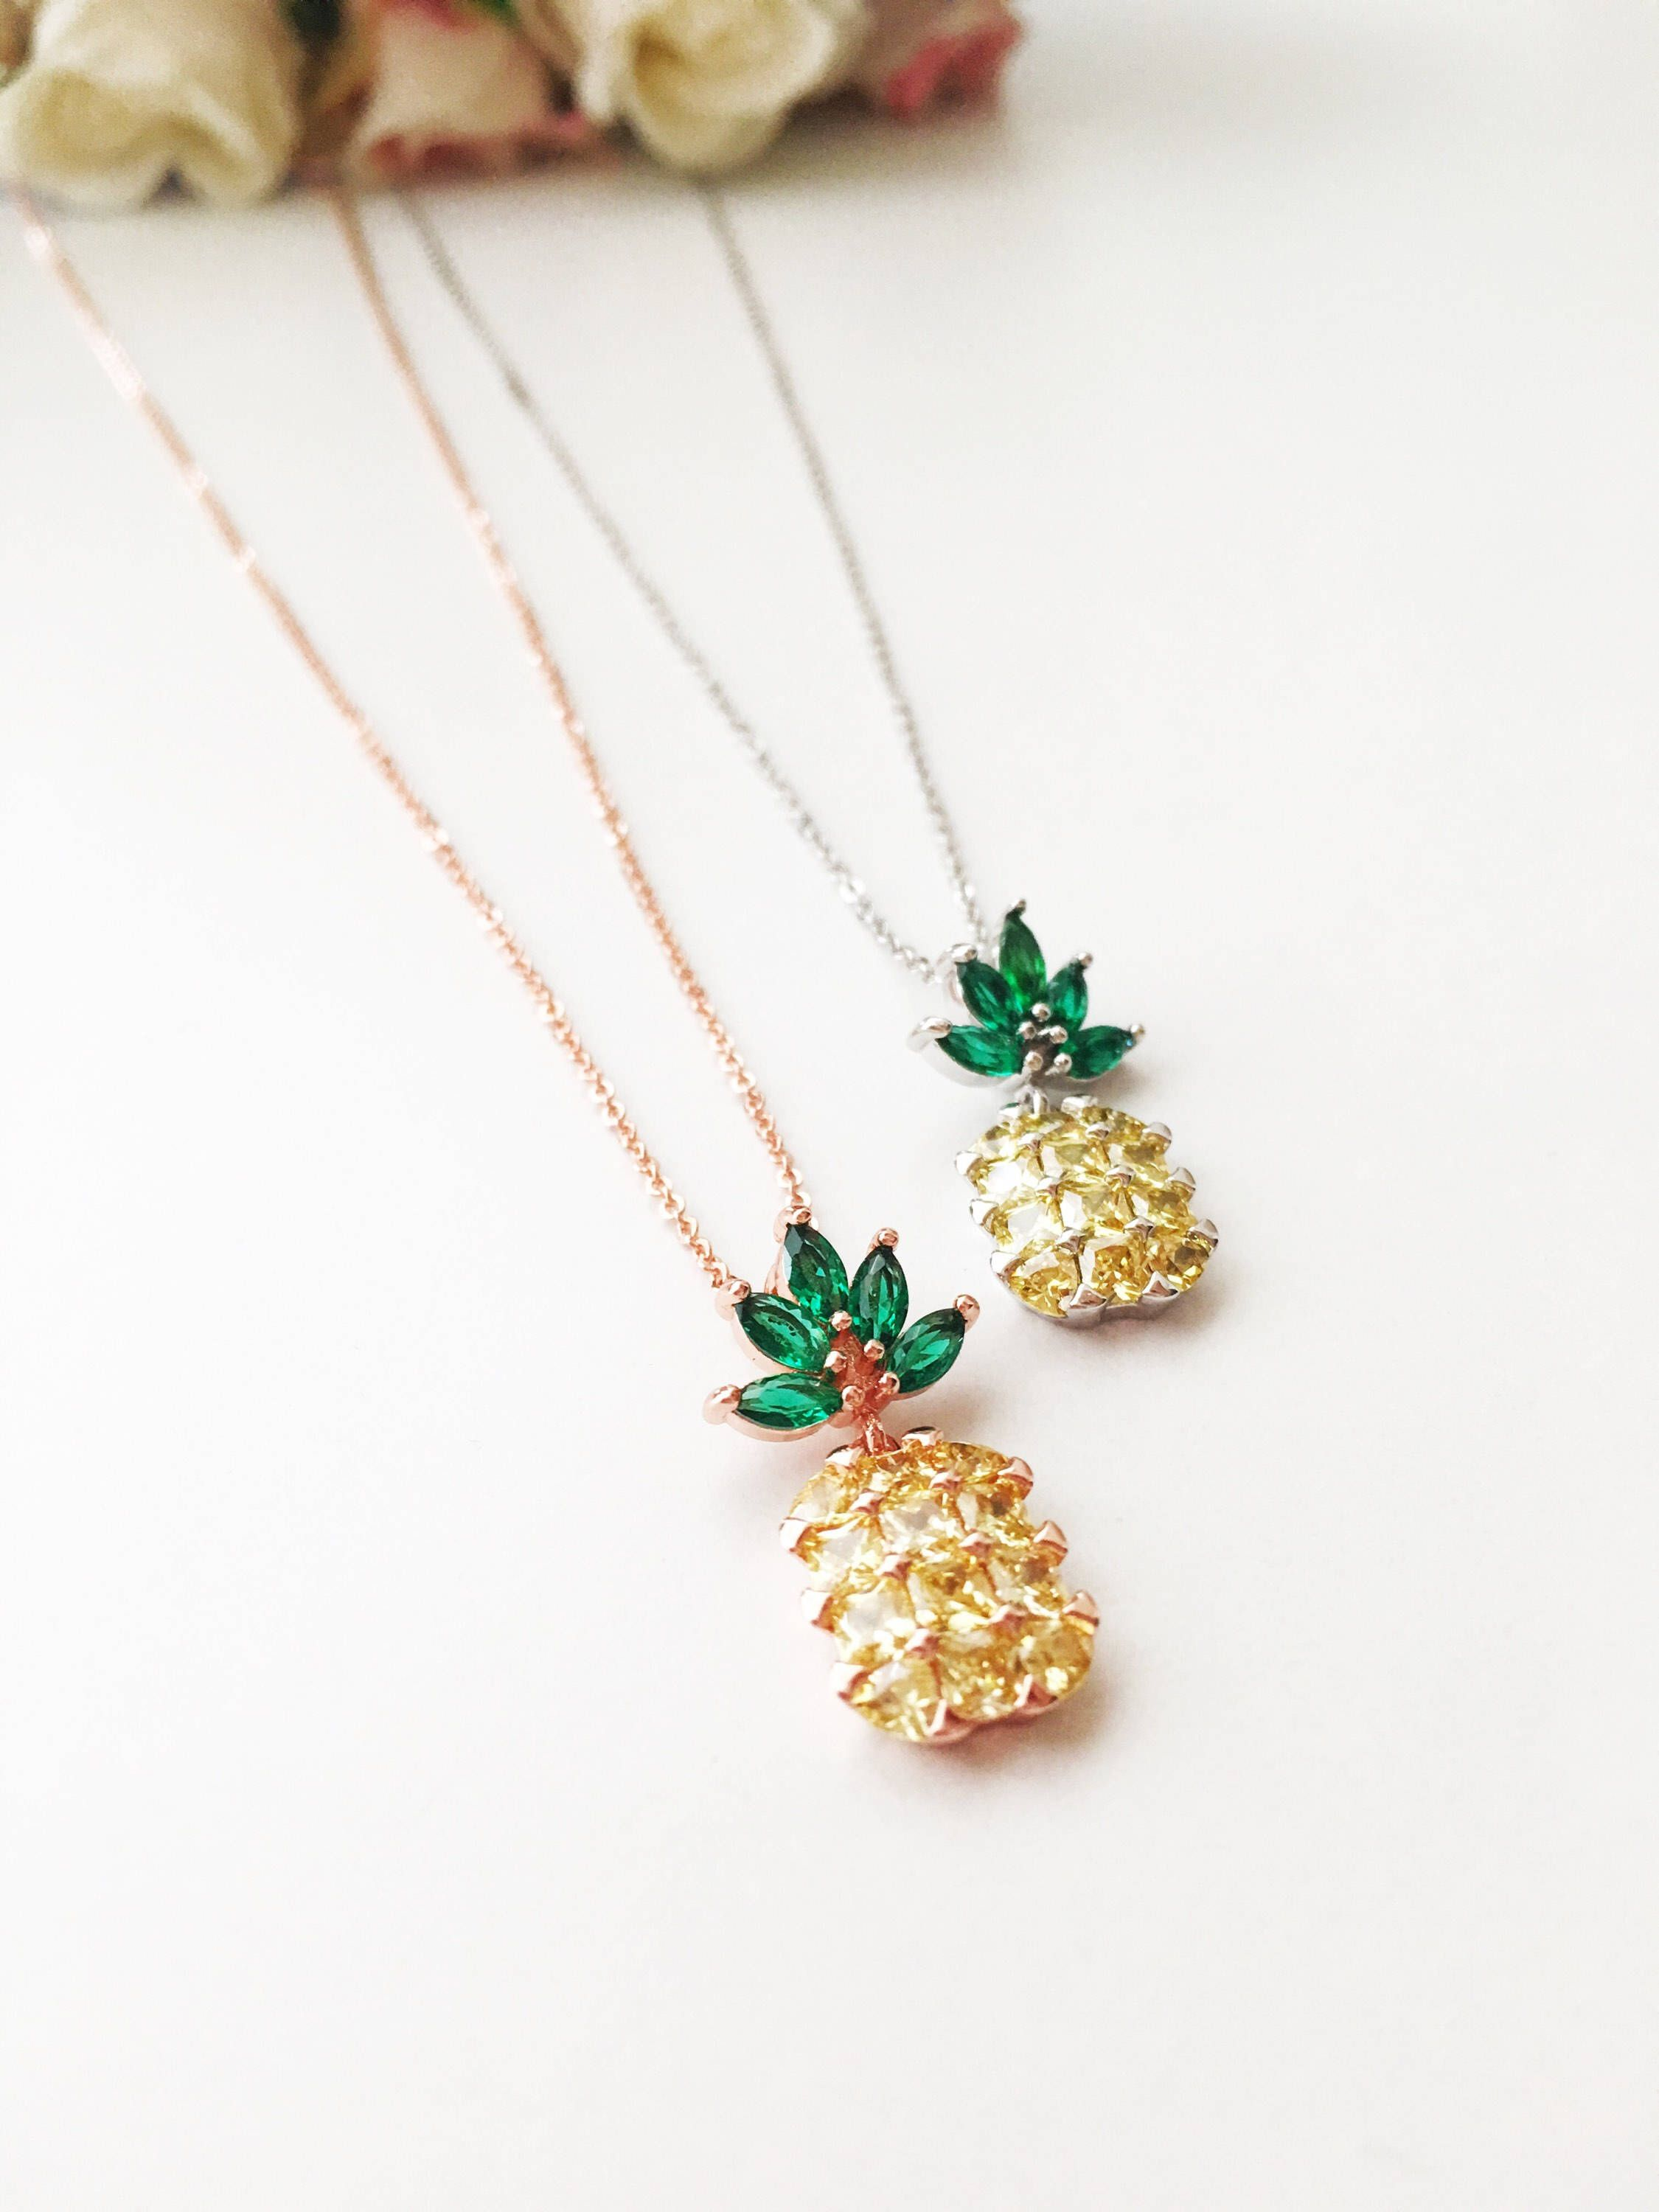 pineapple necklace copy of grace products penny